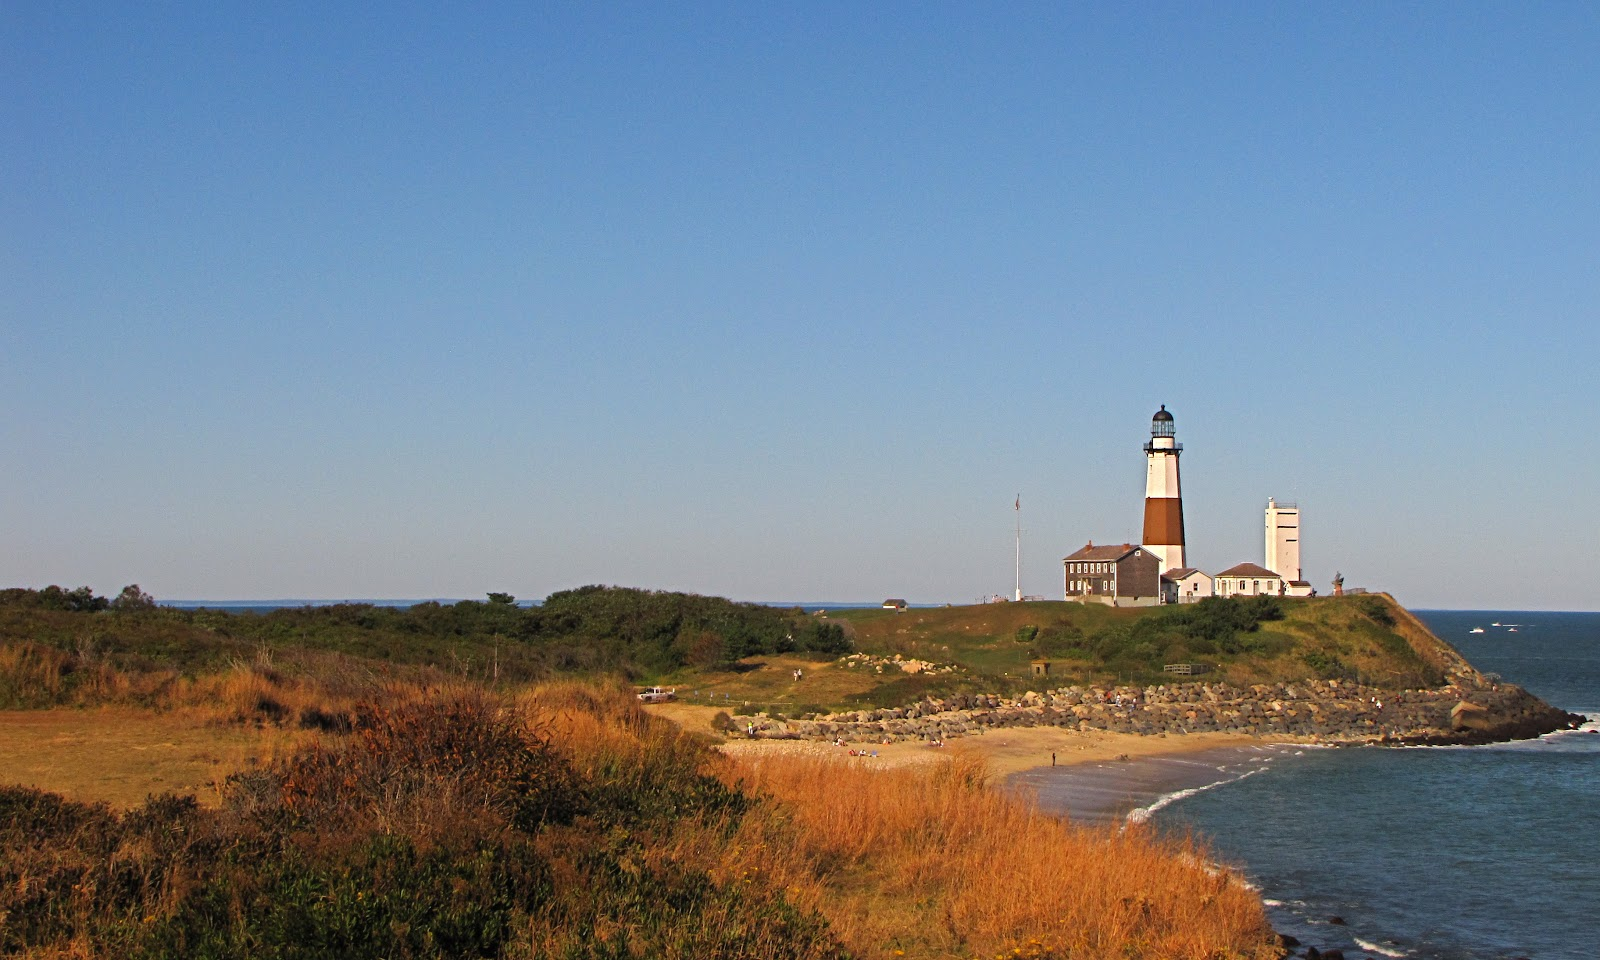 Montauk_Point_Light_-_Suffolk_County_NY.jpg